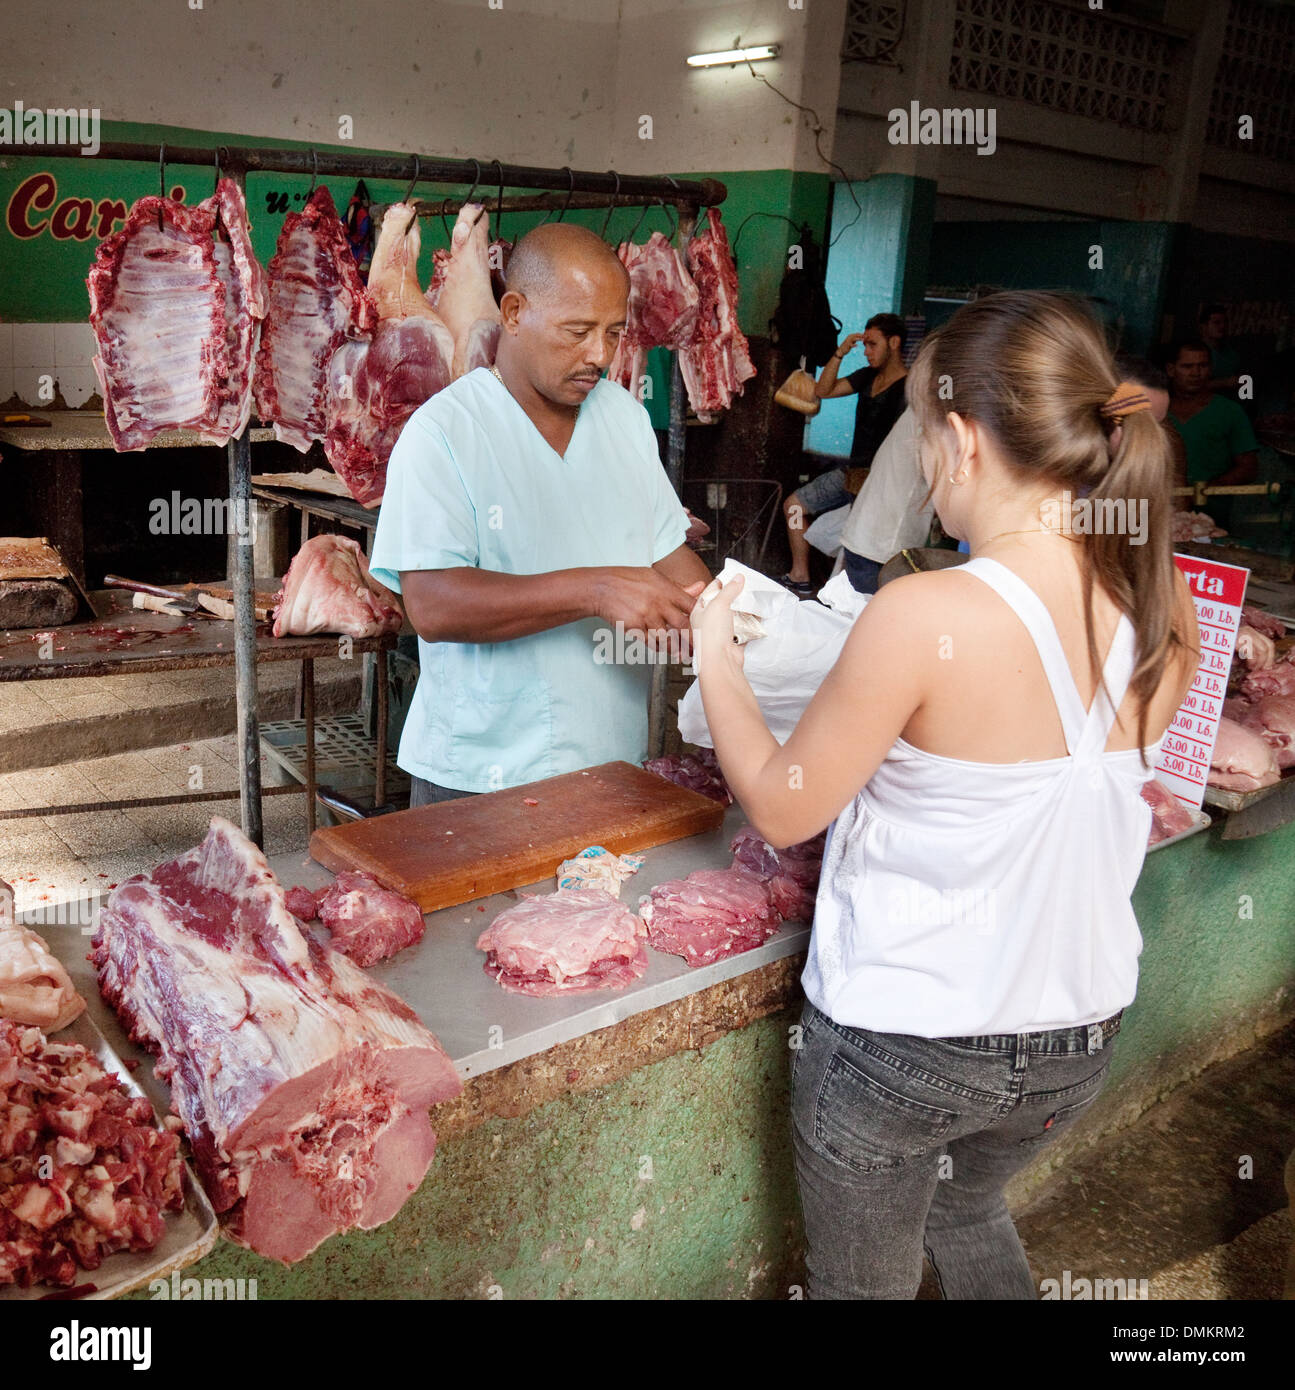 Woman buying meat from a butcher stall, Cienfuegos indoor market, Cuba, caribbean - Stock Image